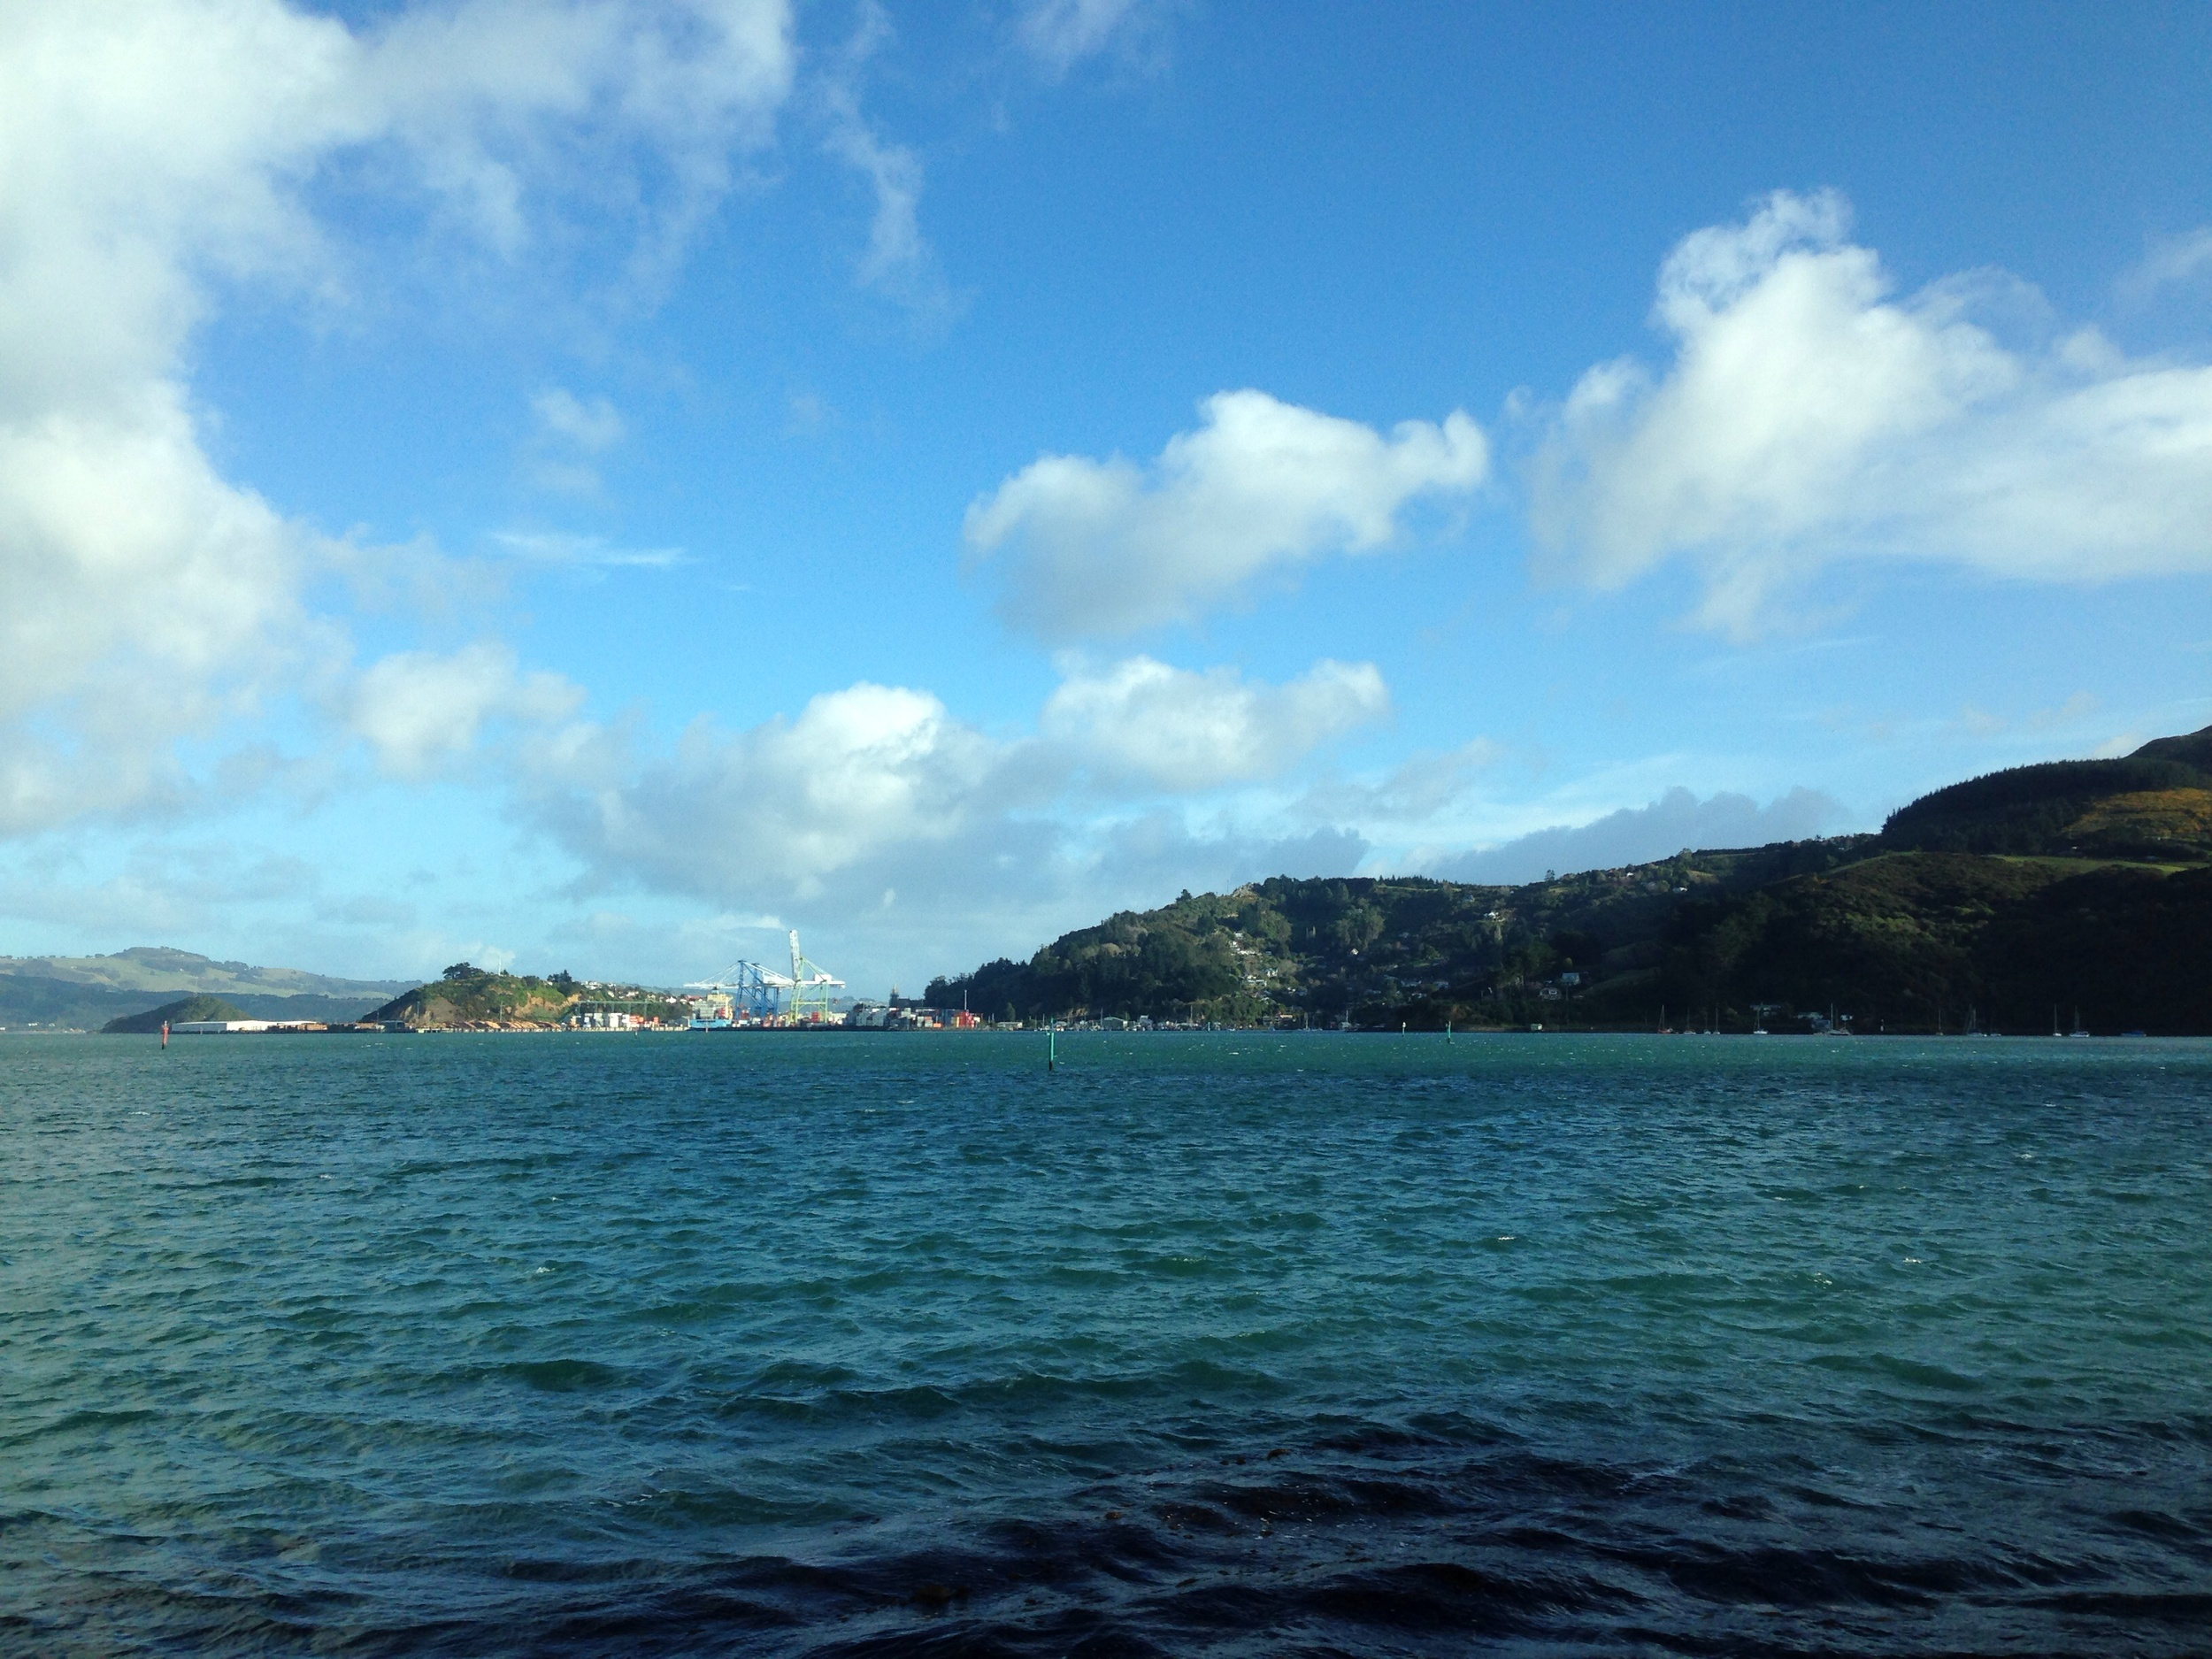 Port Chalmers in the distance.